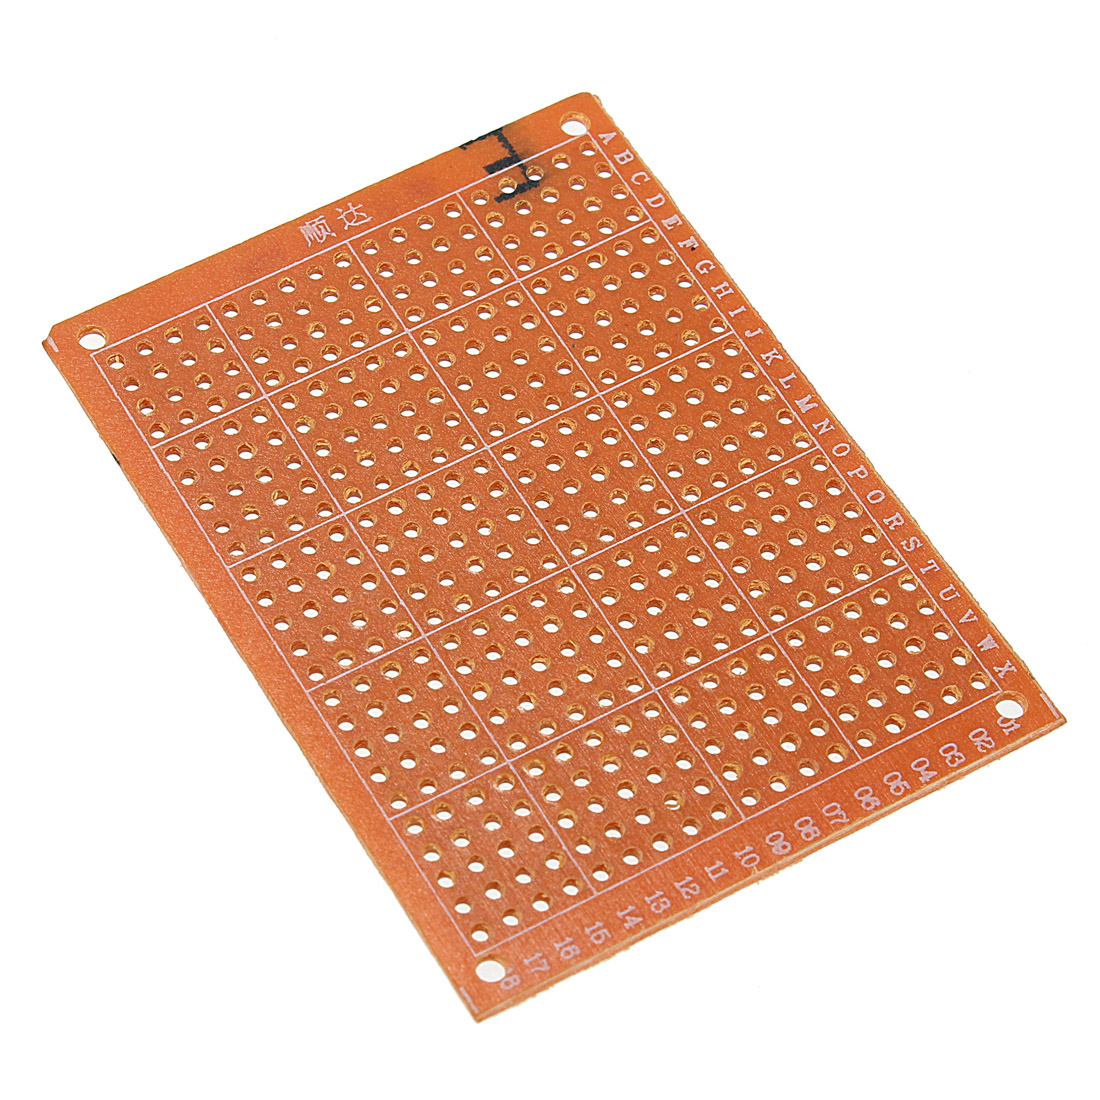 headers, sockets, pcb\u0027s and more9x15cm Prototype Paper Boards Pcb Blank Printed Circuit Board Diy Gib #9